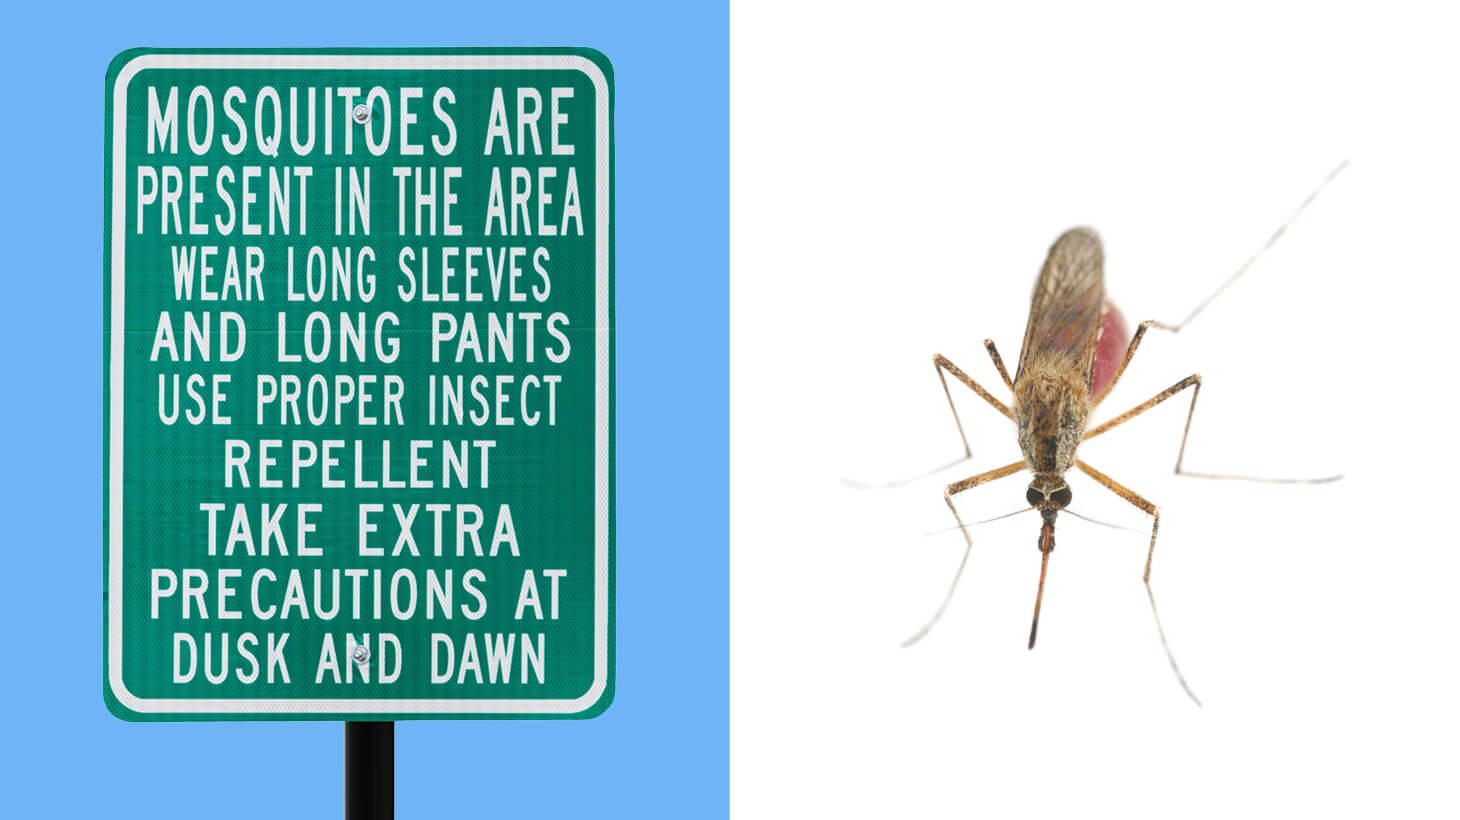 Mosquito warning sign and mosquito